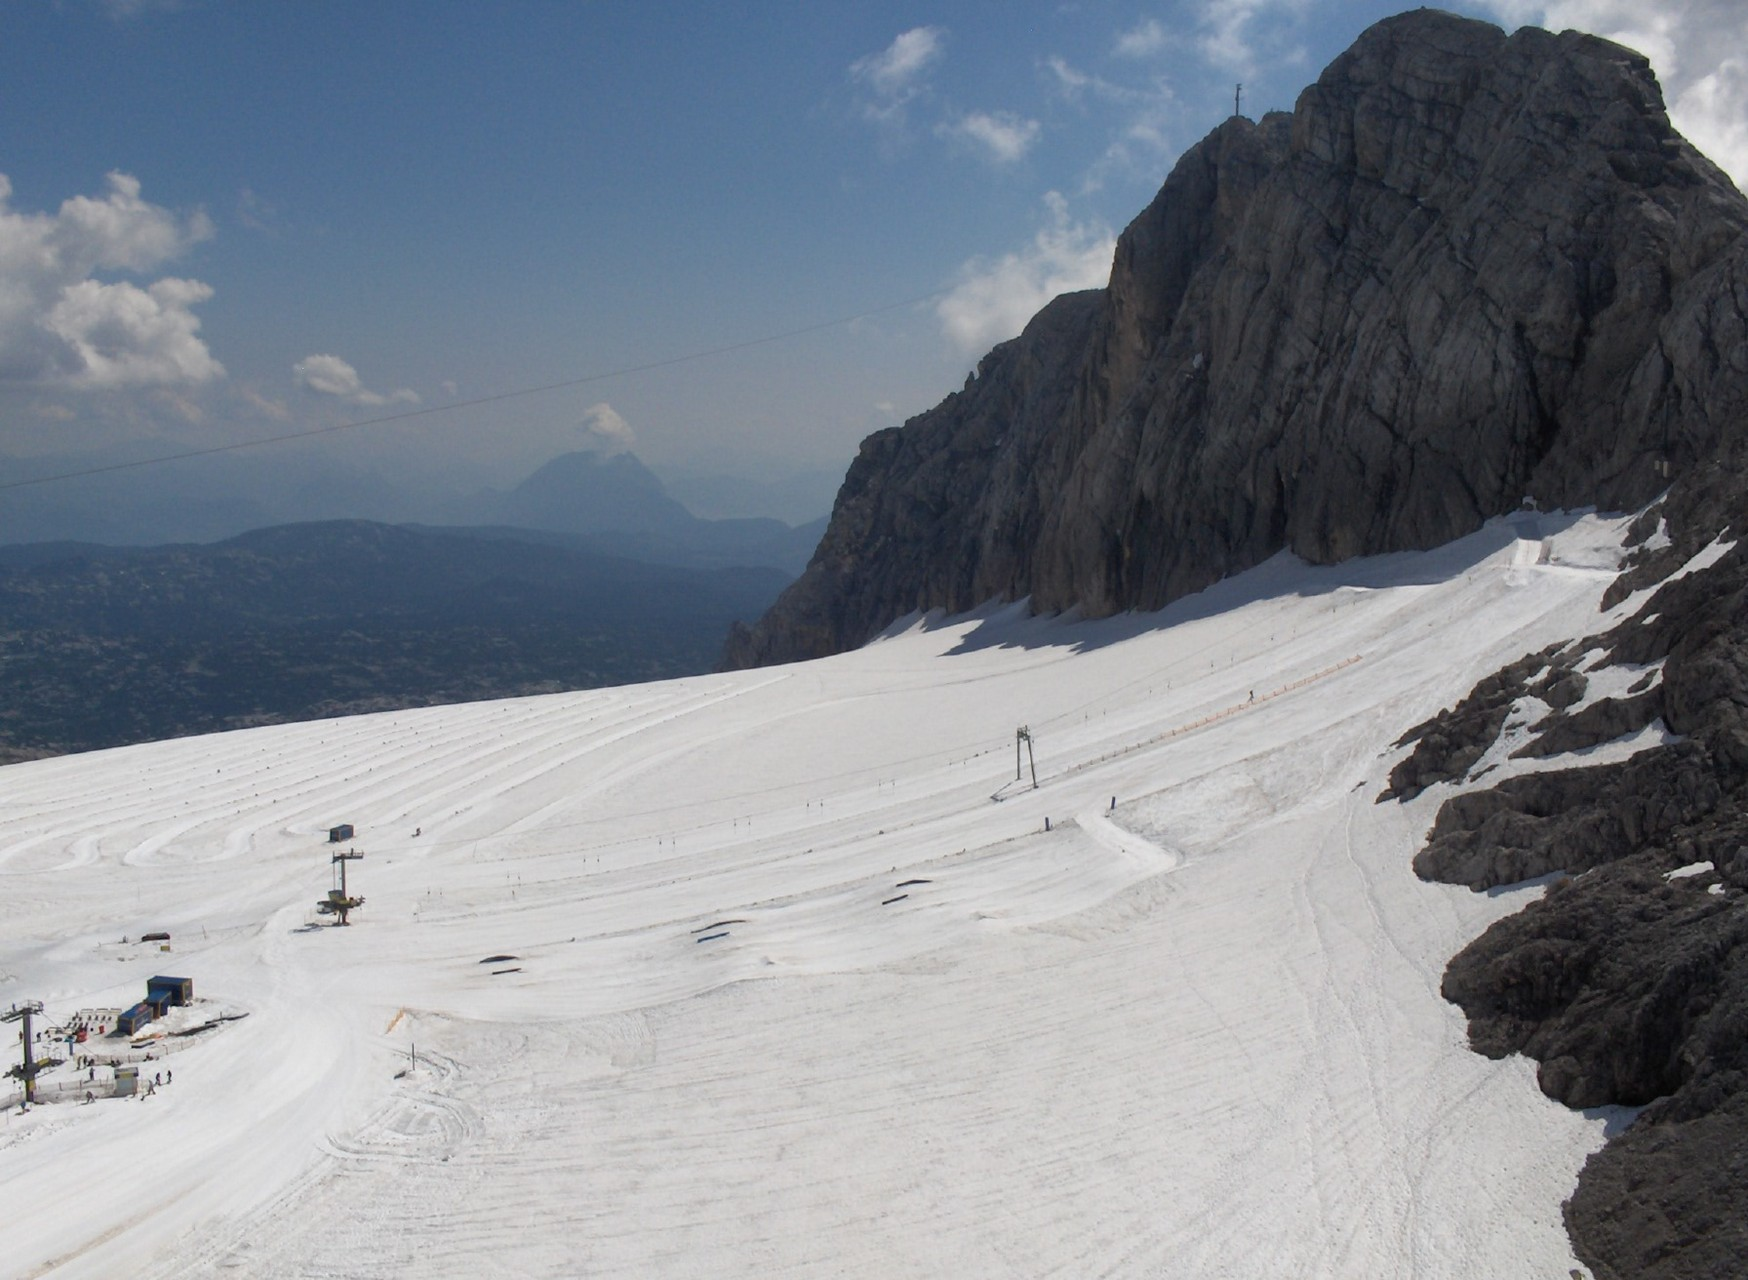 On the Dachstein glacier